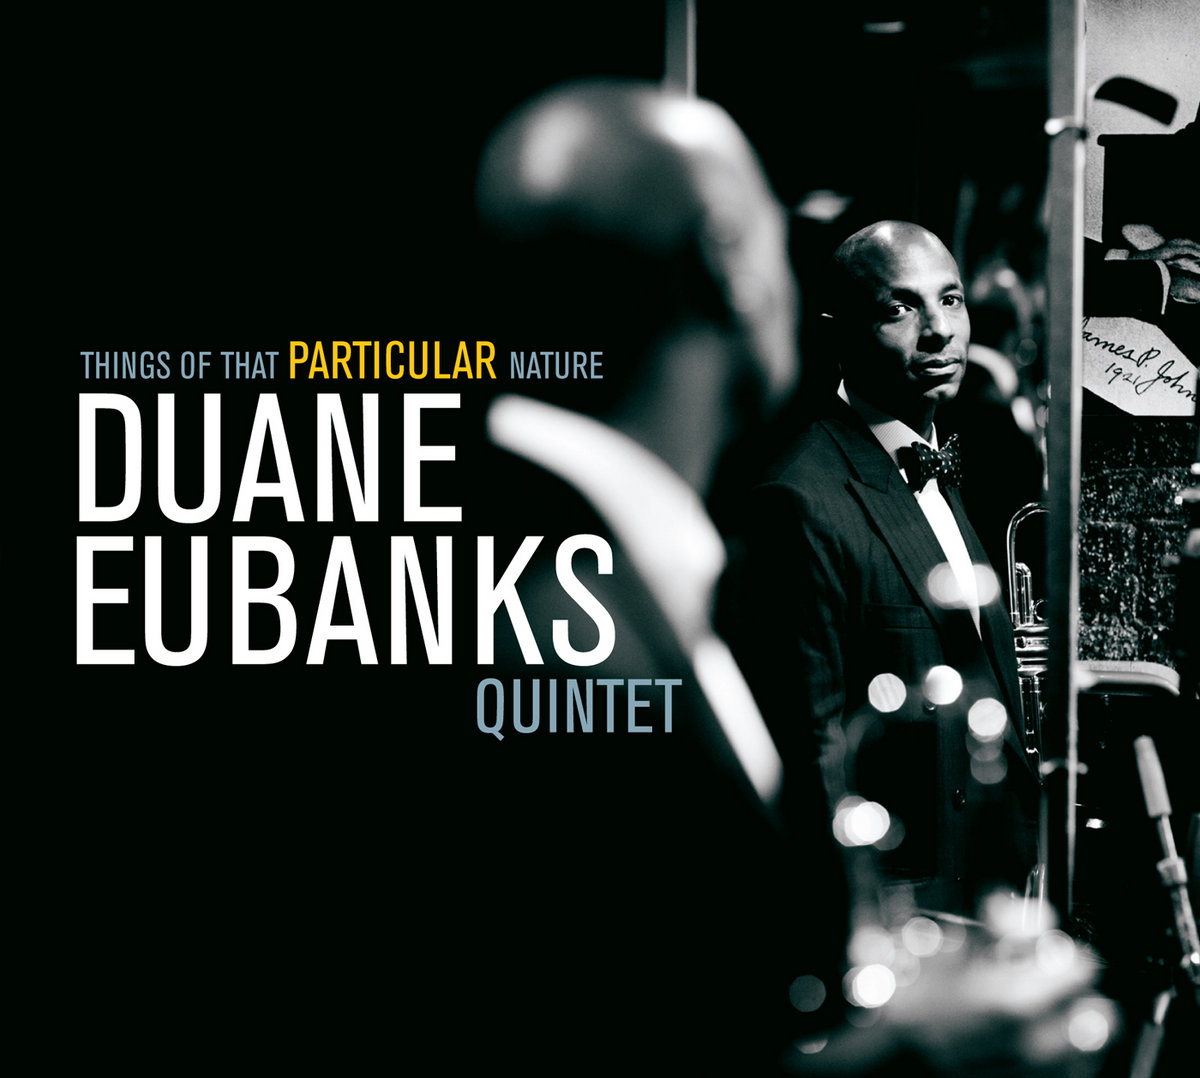 Image result for duane eubanks things of that particular nature